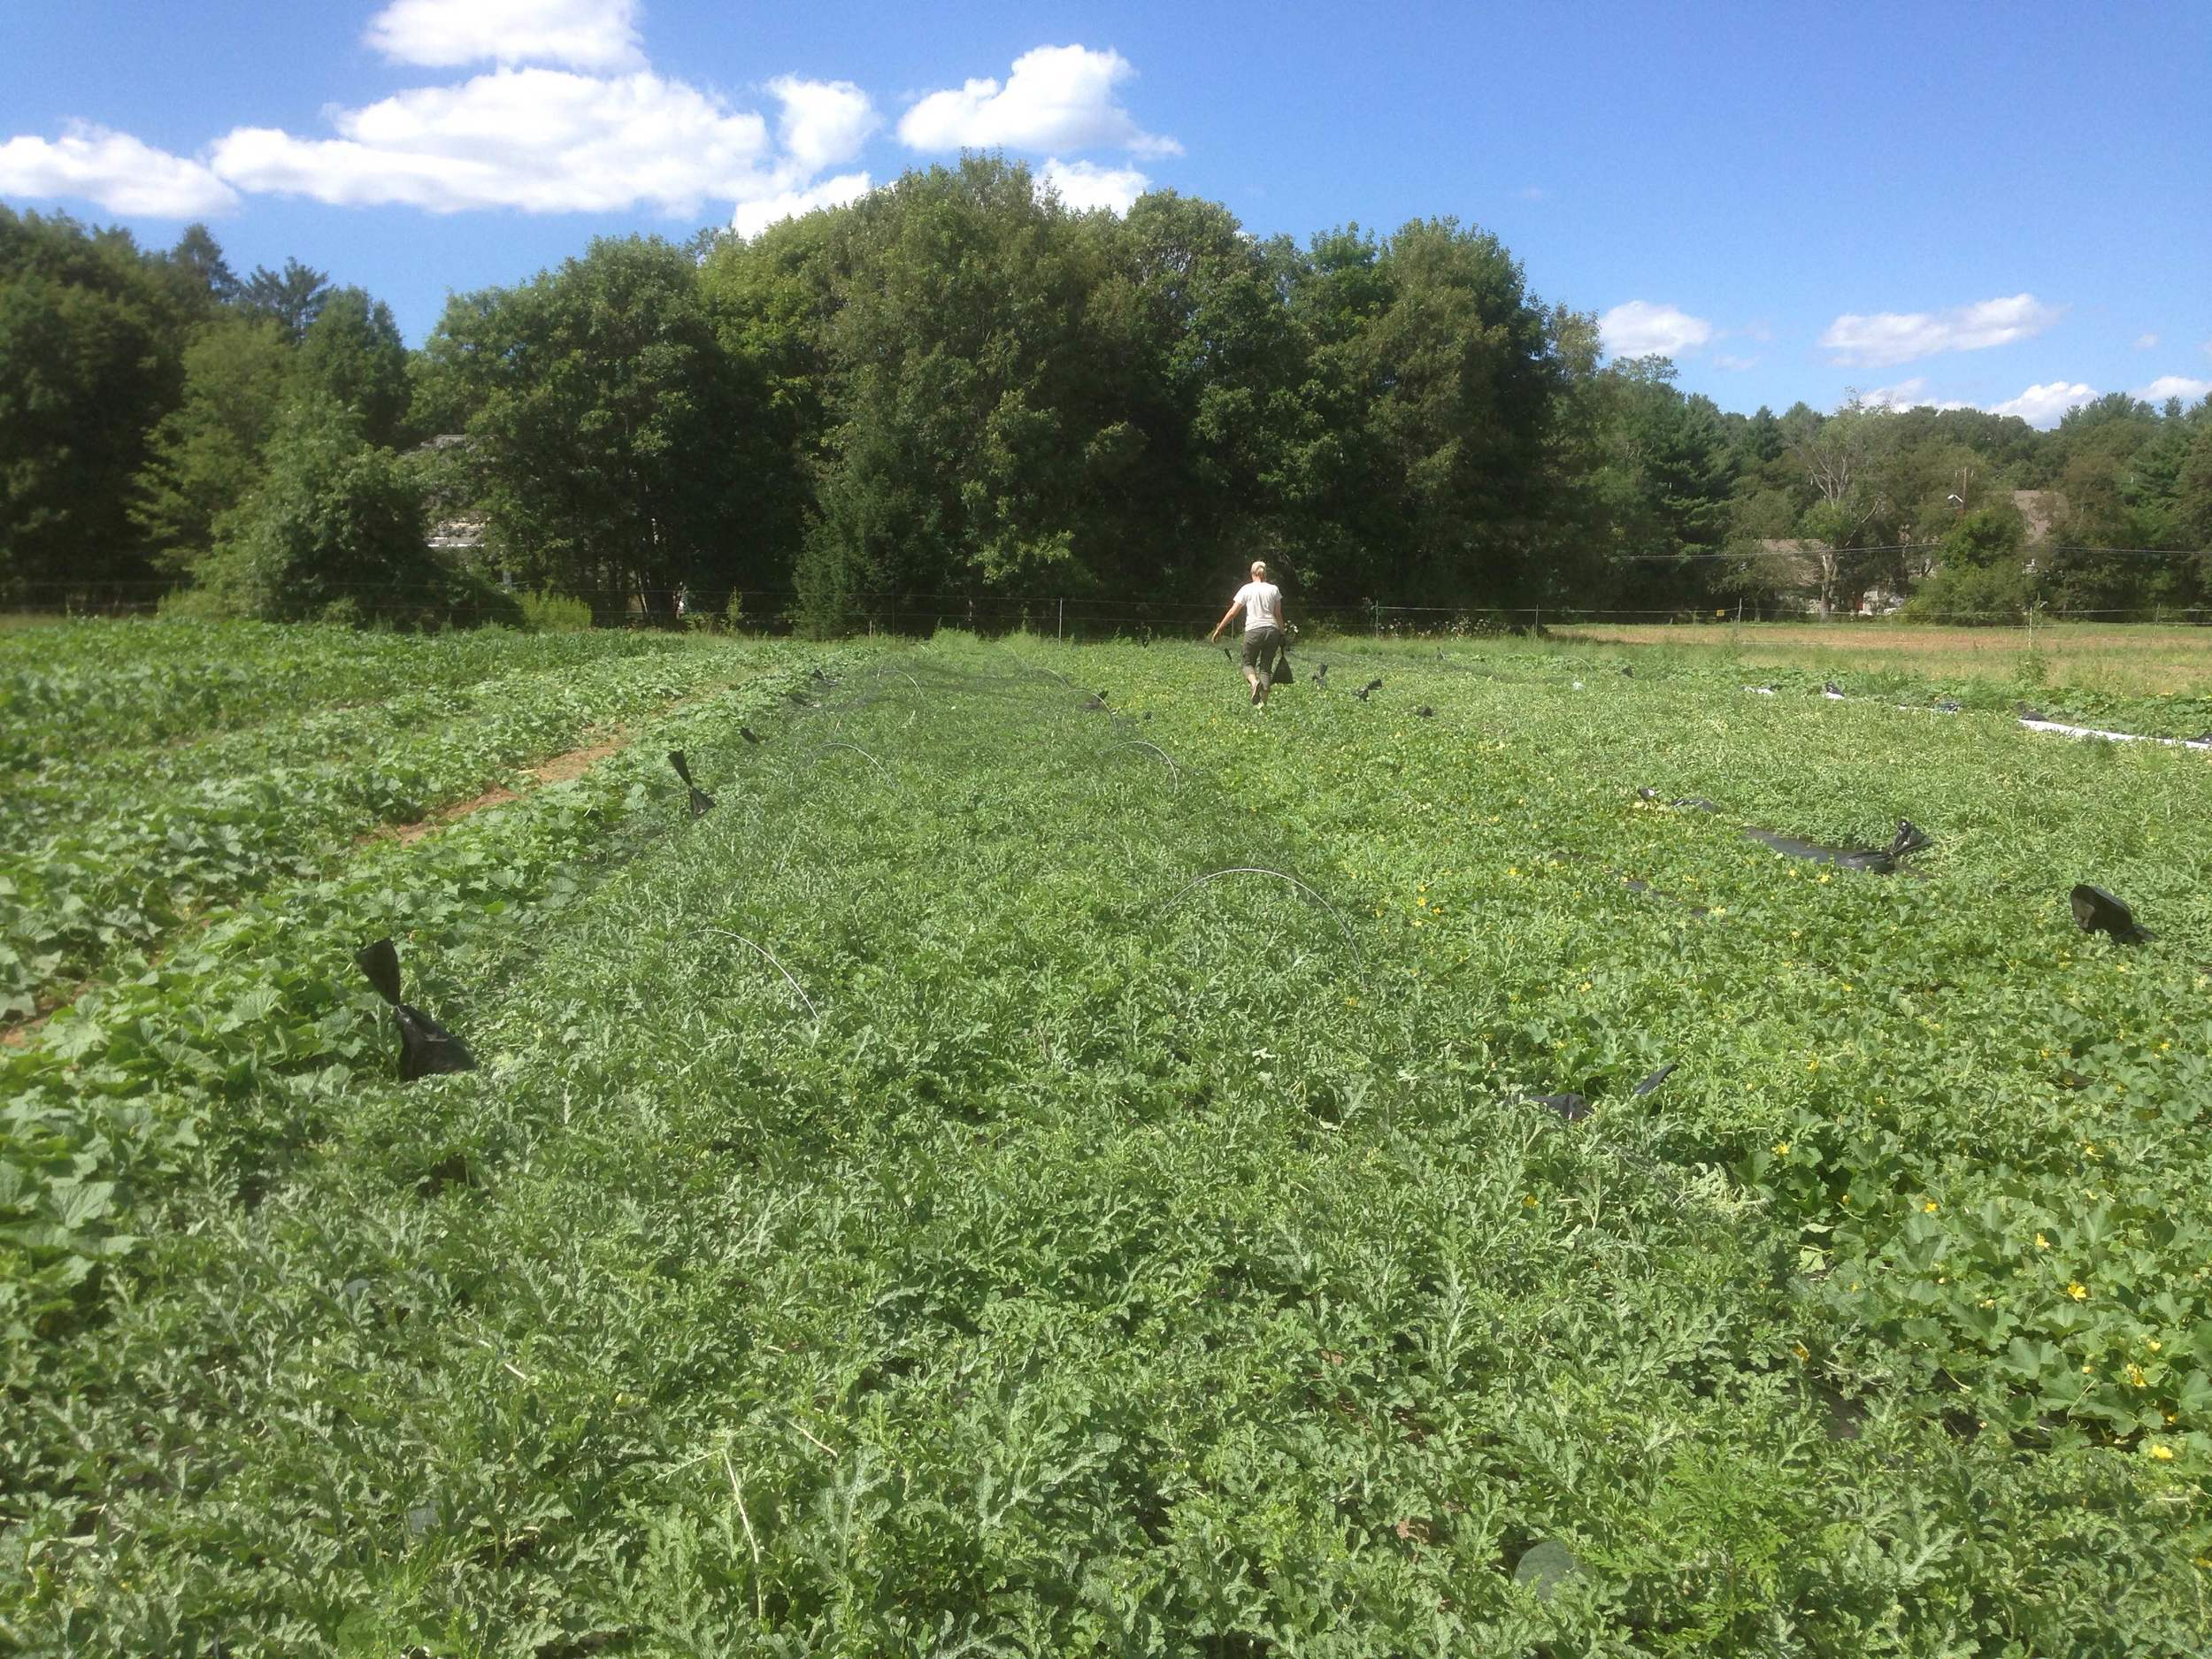 Covering the melon field with netting to keep crows and coyotes out.